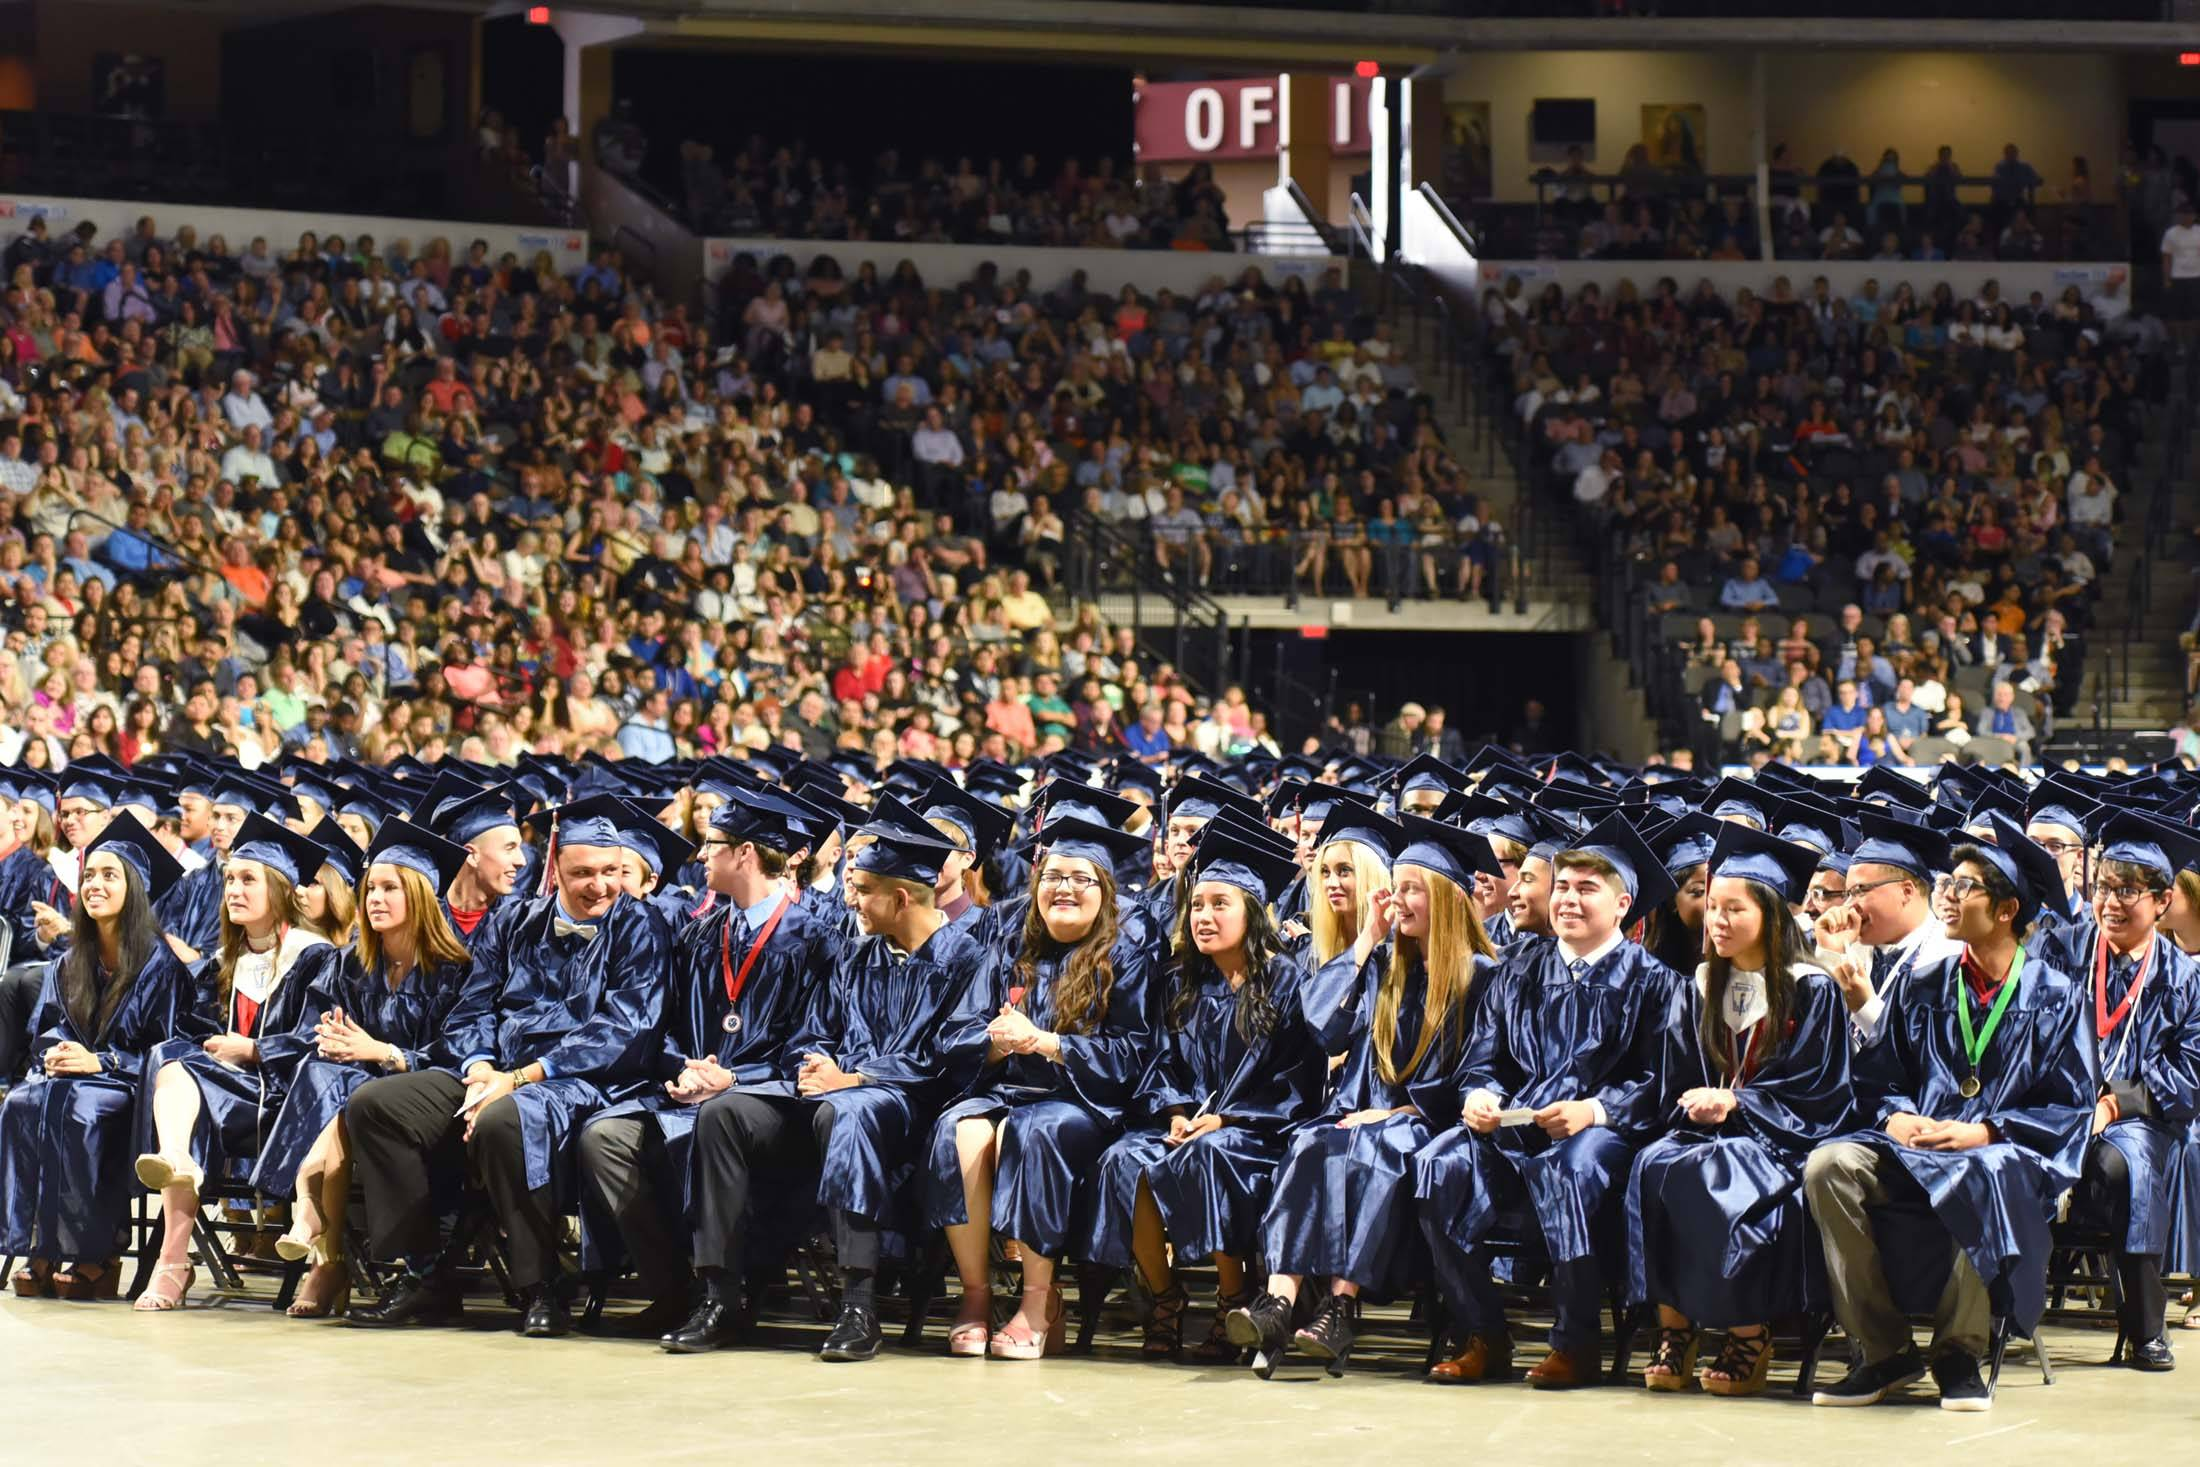 South Elgin High School's graduation has been held at the Sears Centre Arena in Hoffman Estates since 2007. Elgin Area School District U-46 paid roughly $49,000 to hold five high school graduations at the arena this year.